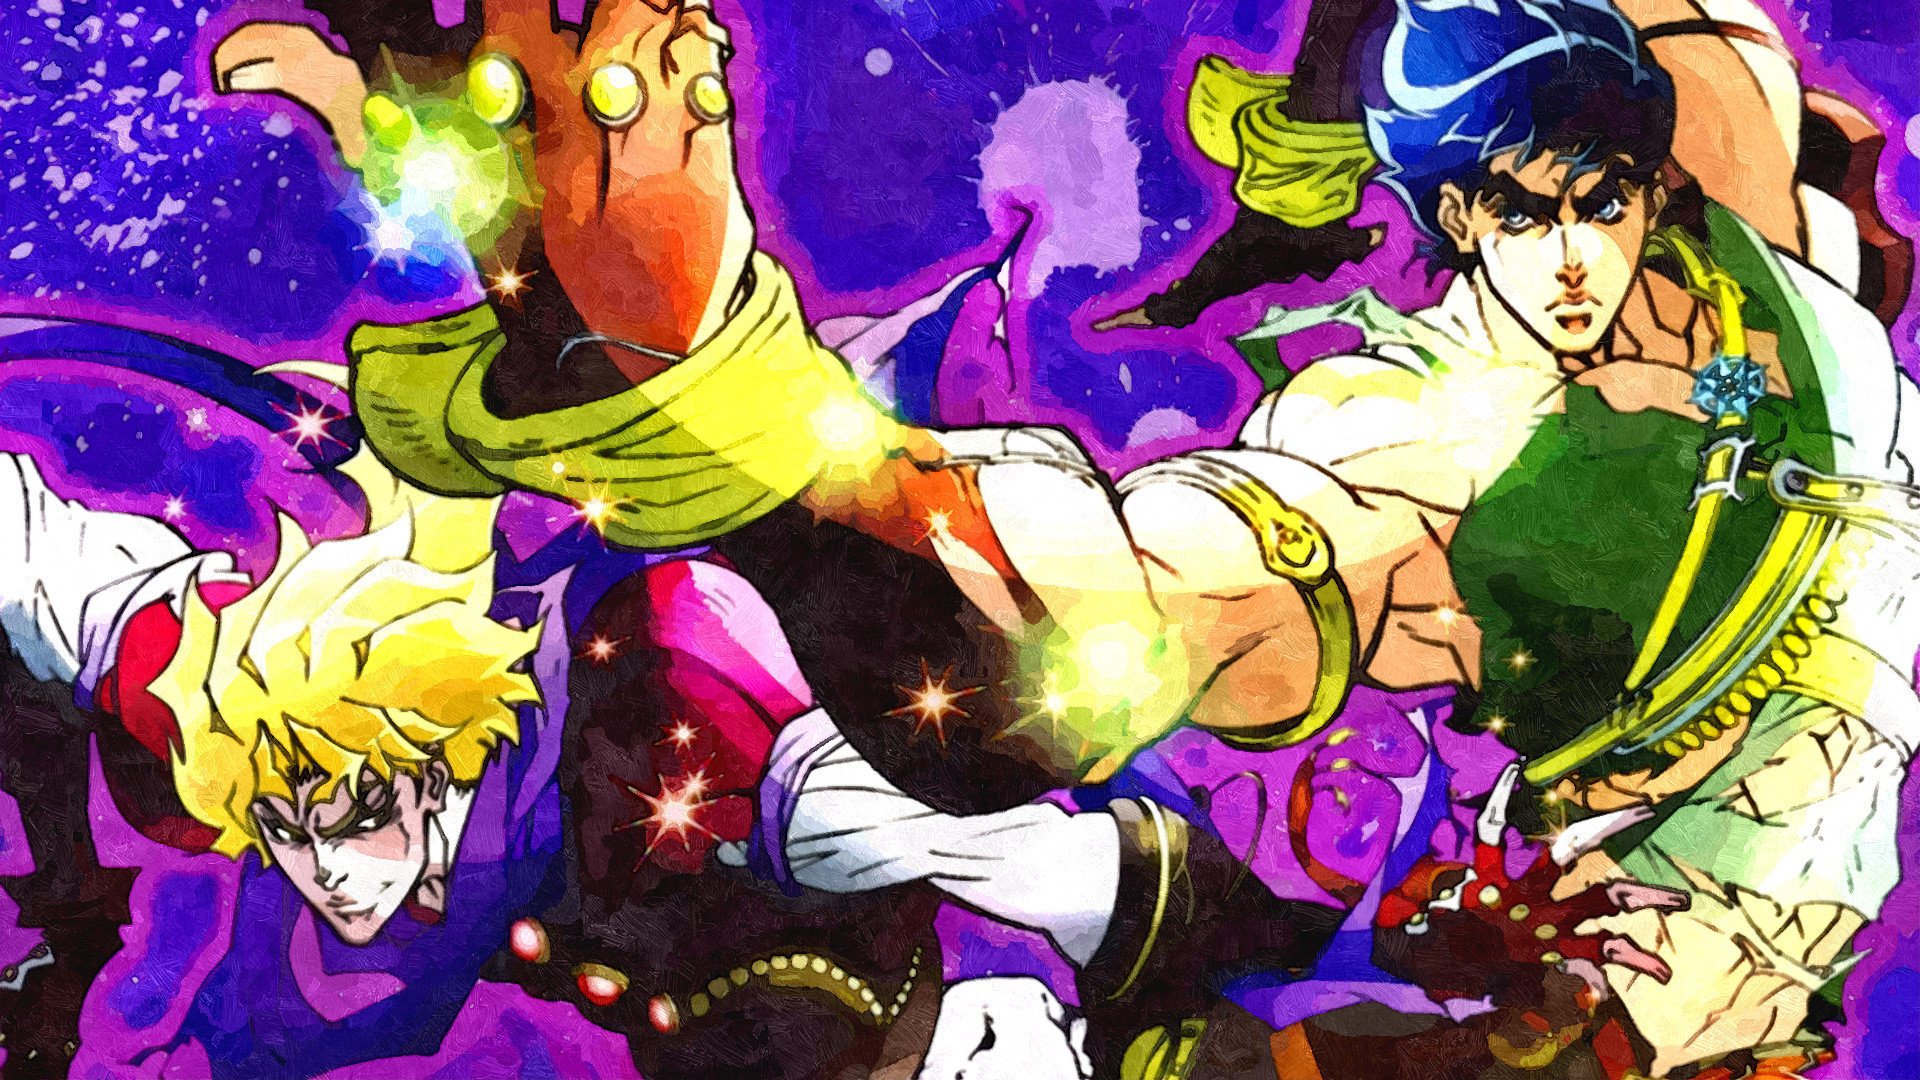 Free download Jojo's Bizarre Adventure wallpaper ID:296976 hd 1080p for desktop